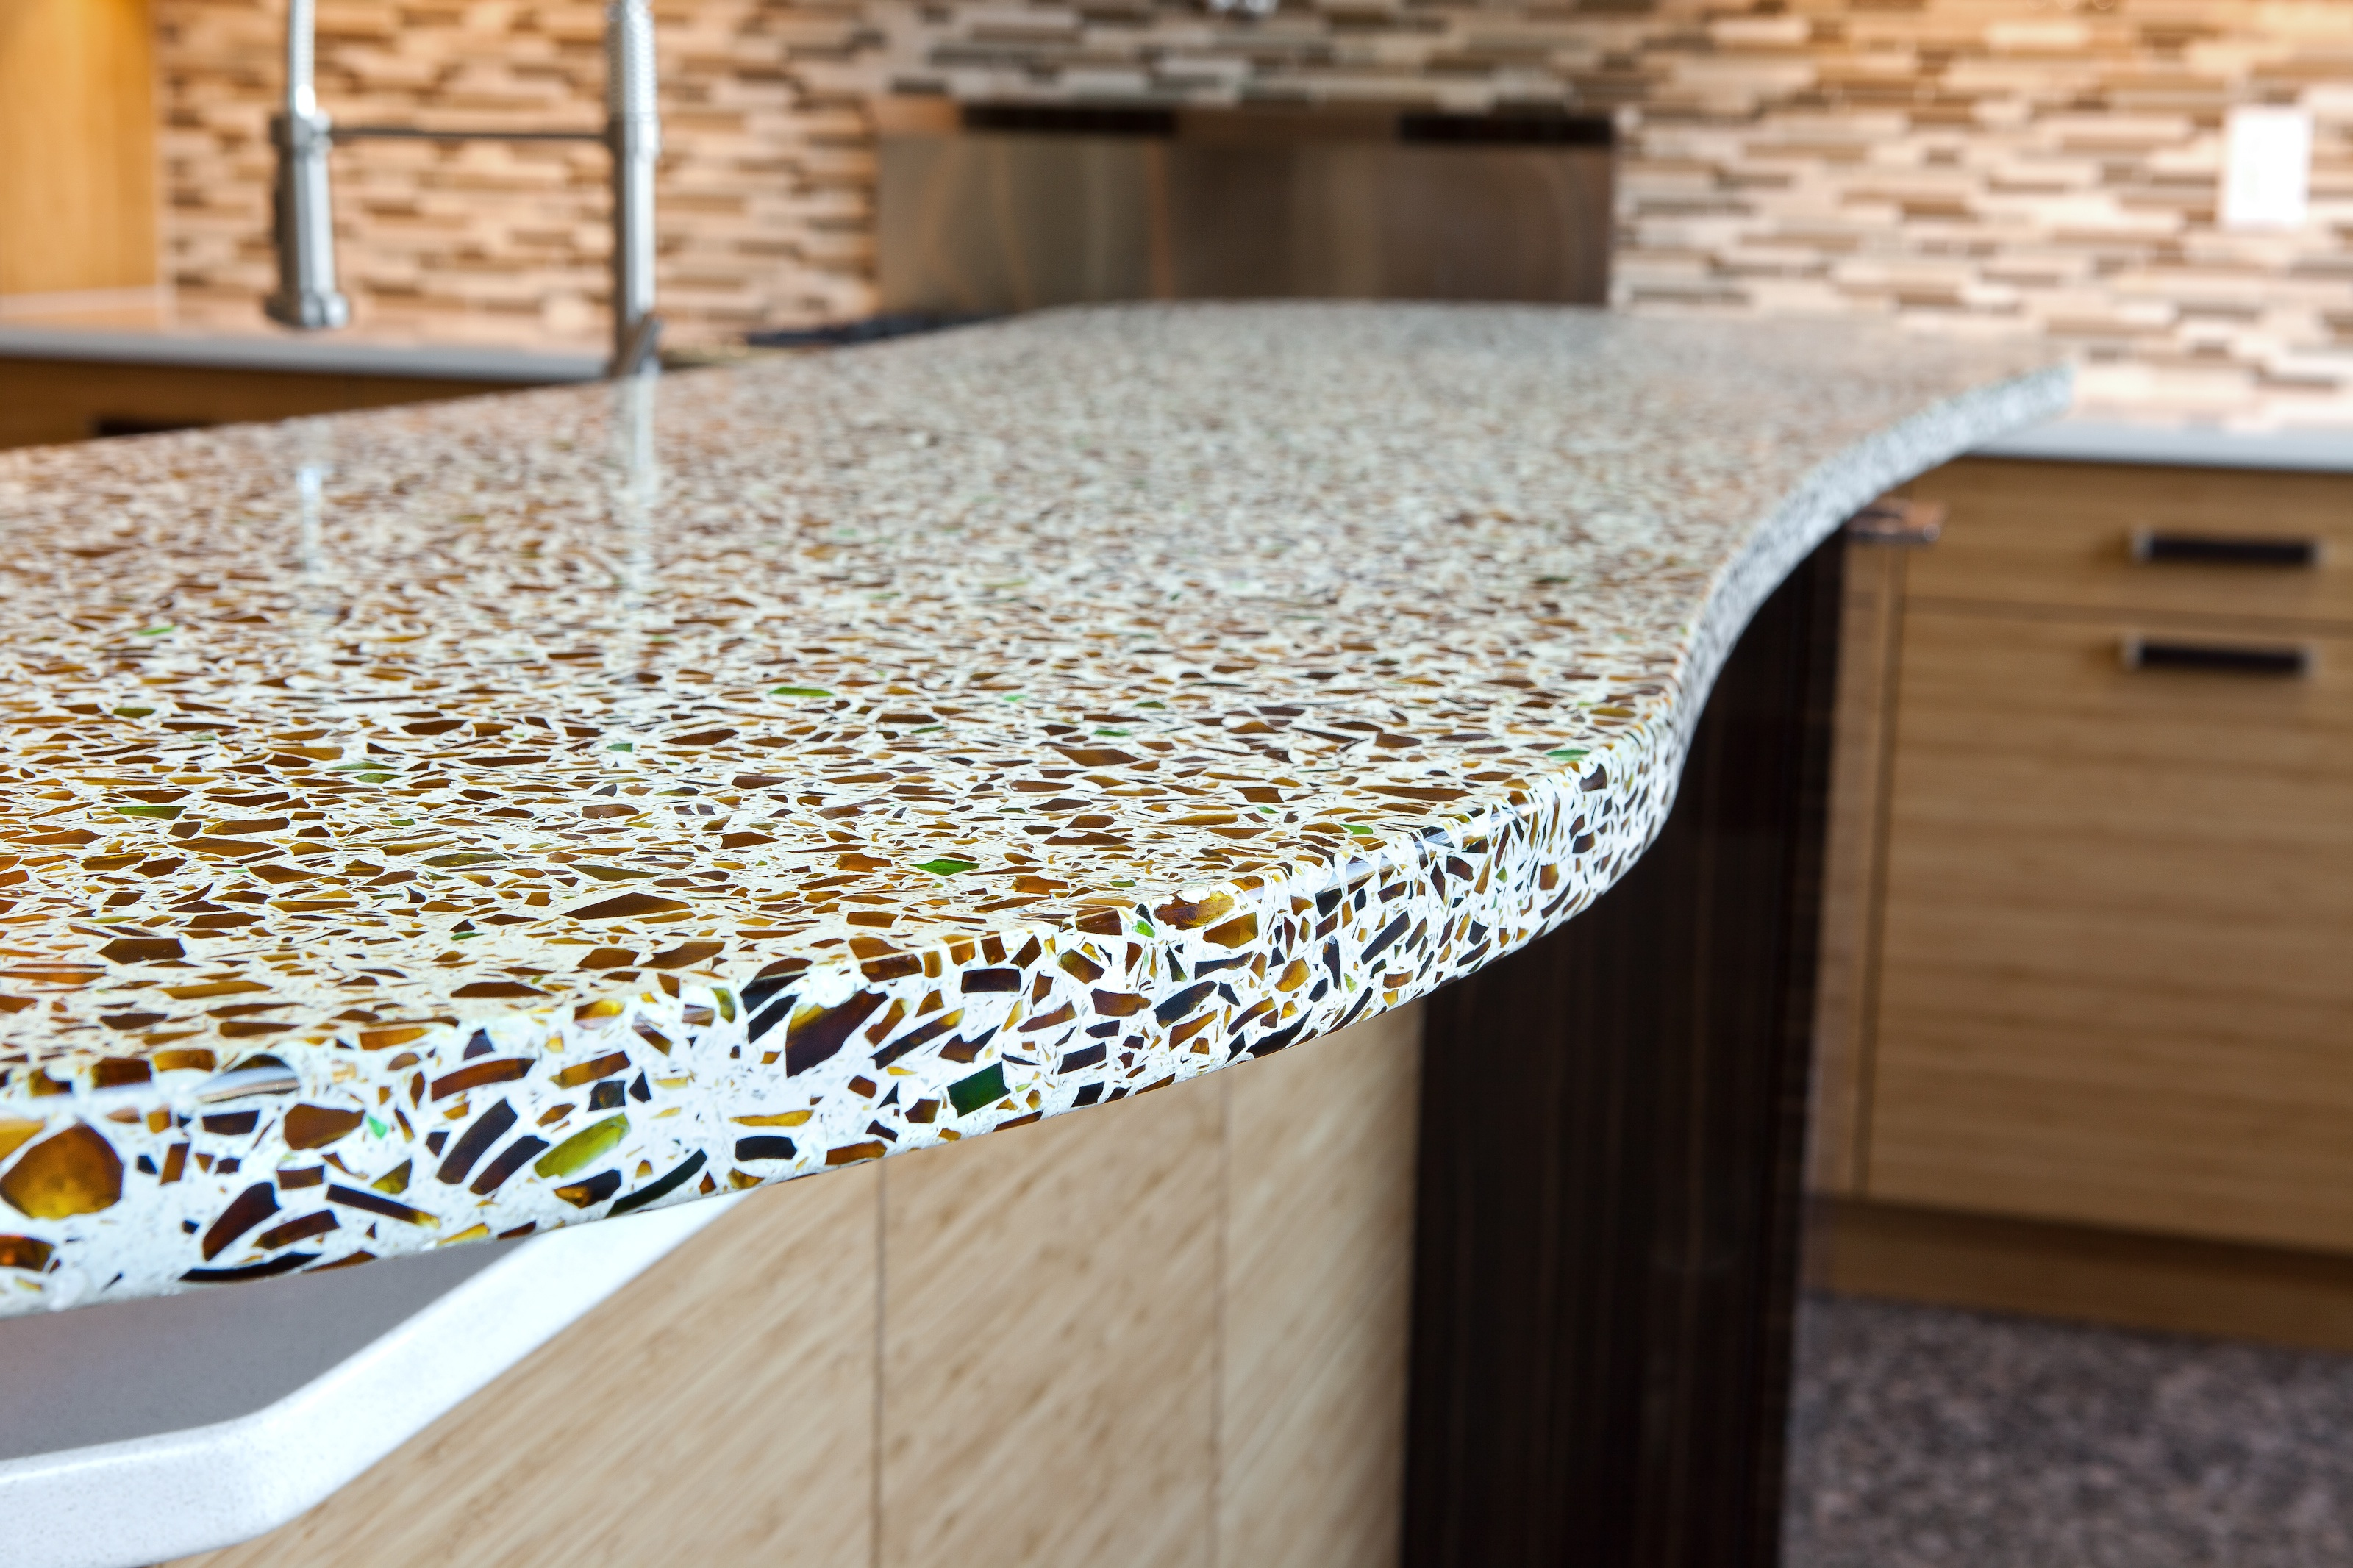 Recycled Glass Kitchen Countertops Recycled glass set in concrete | Photo Source: caddomineral.com